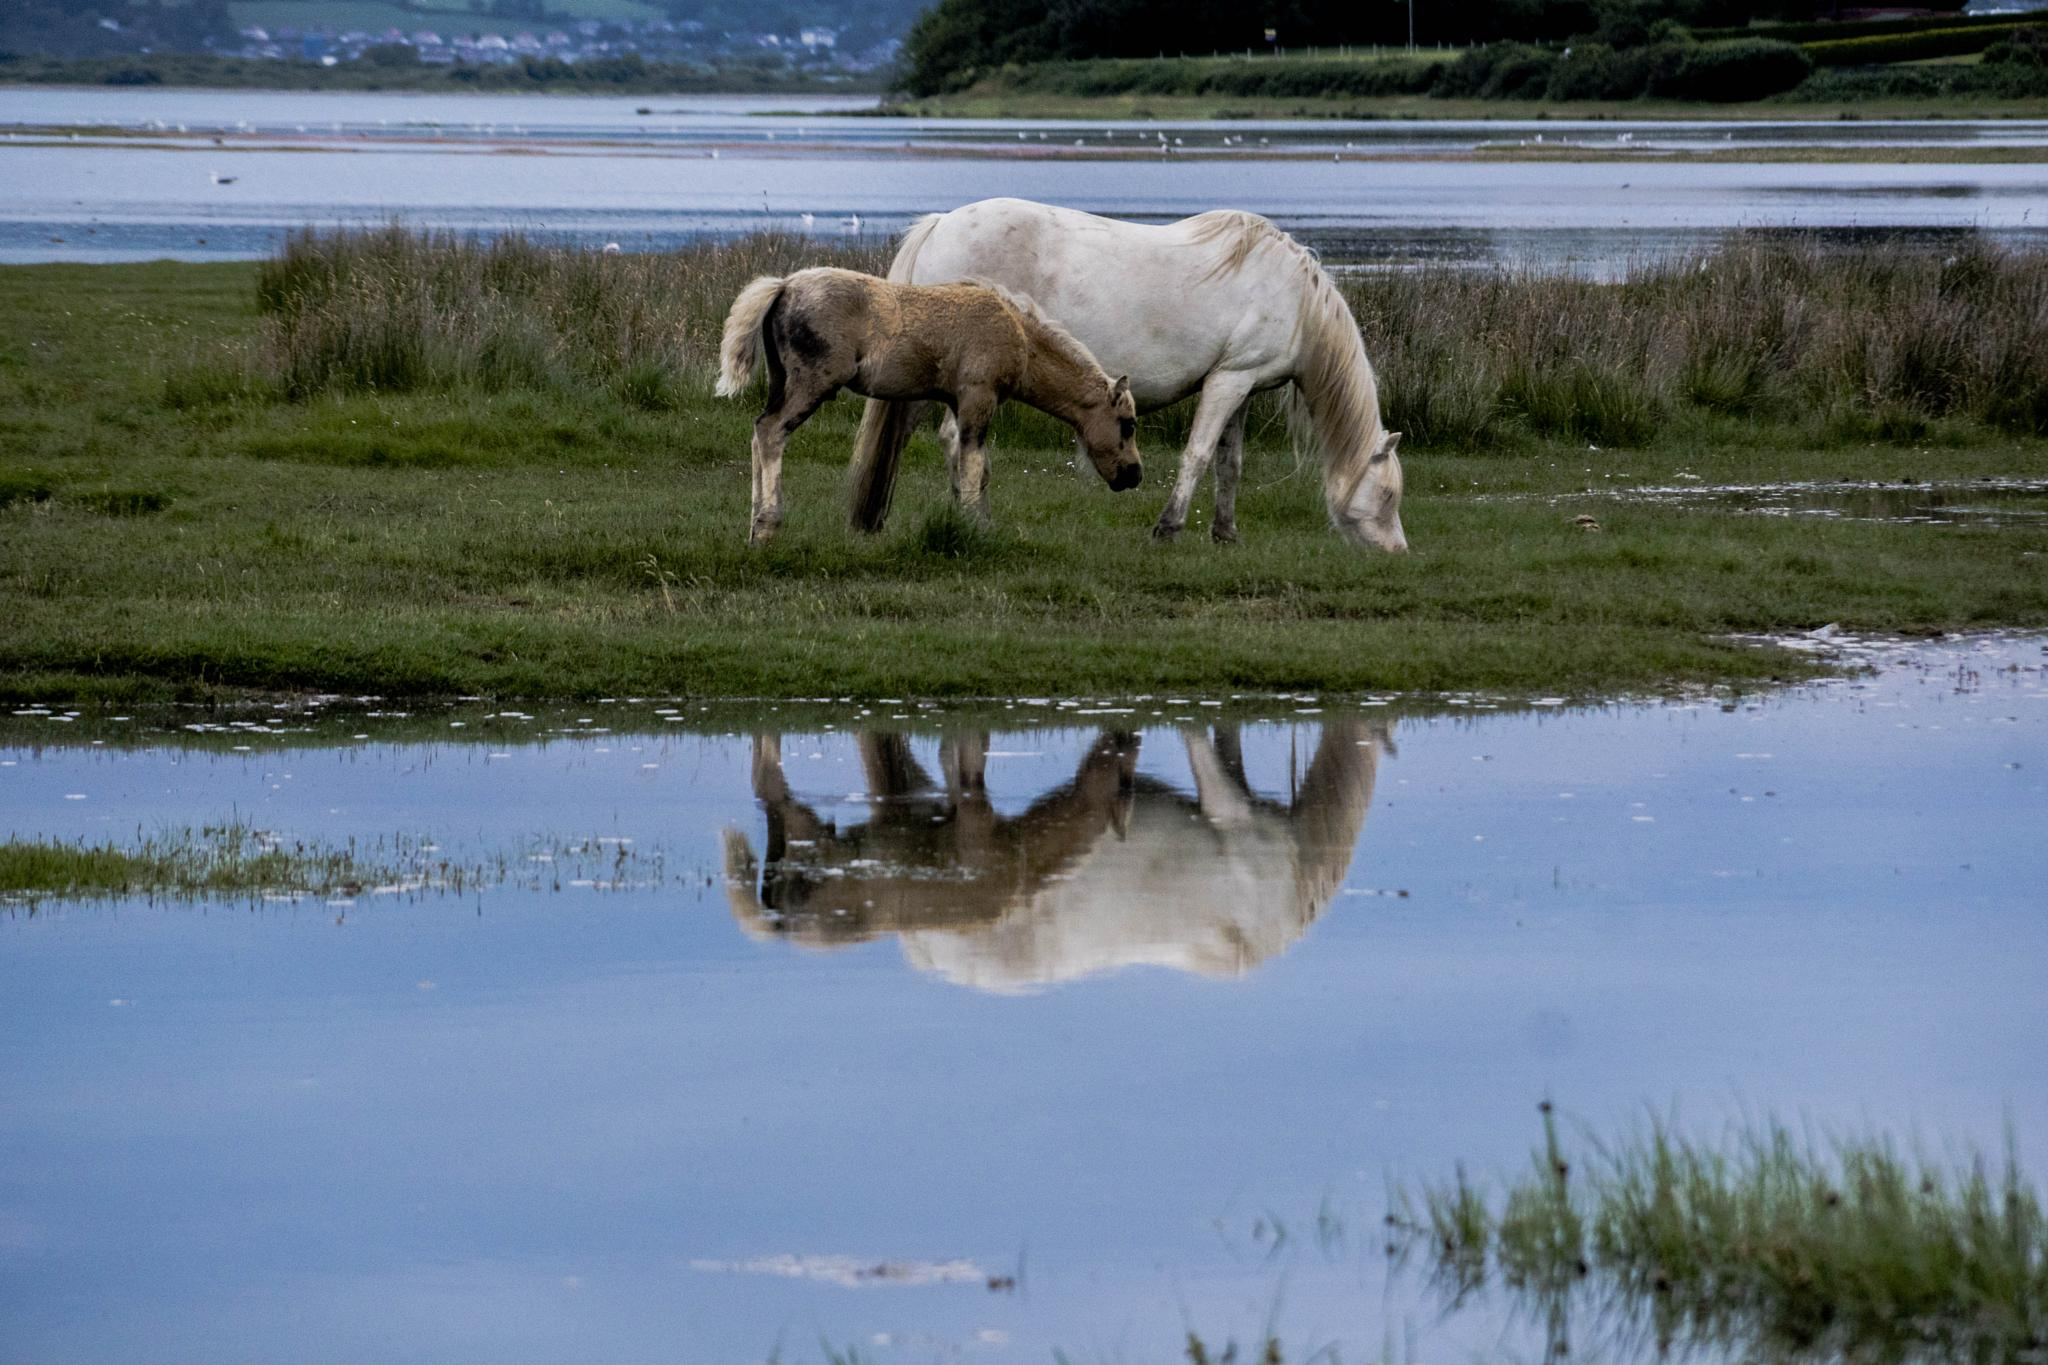 Wild Horses by wayne.mctaggart.9